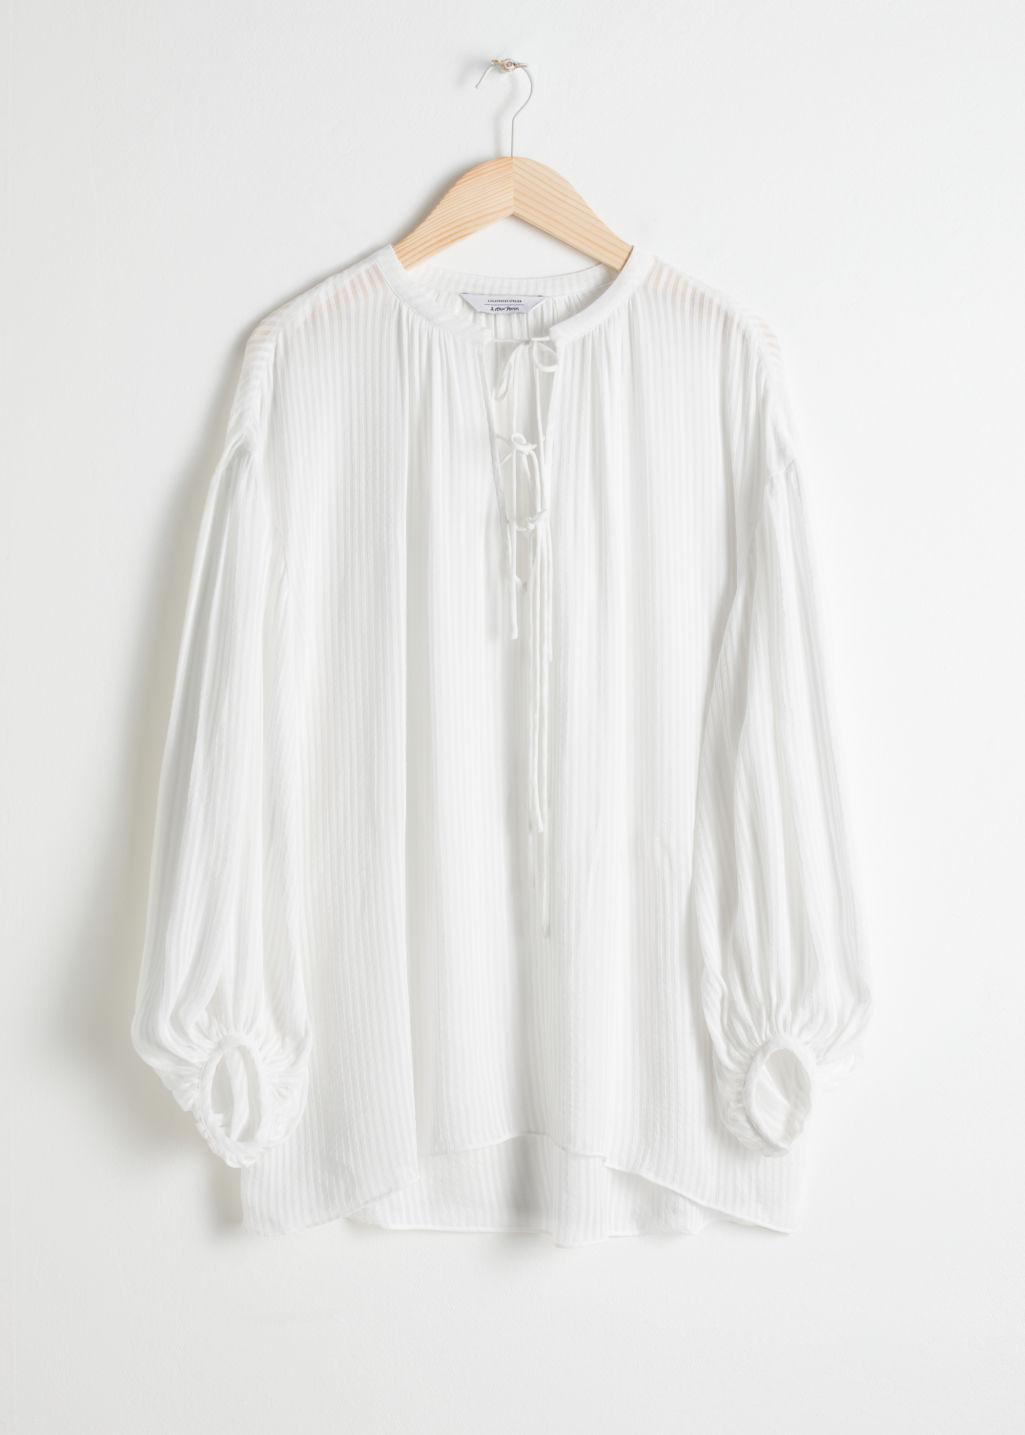 5ff8263a852ed Other Stories - White Sheer Stripe Tie Blouse - Lyst. View fullscreen